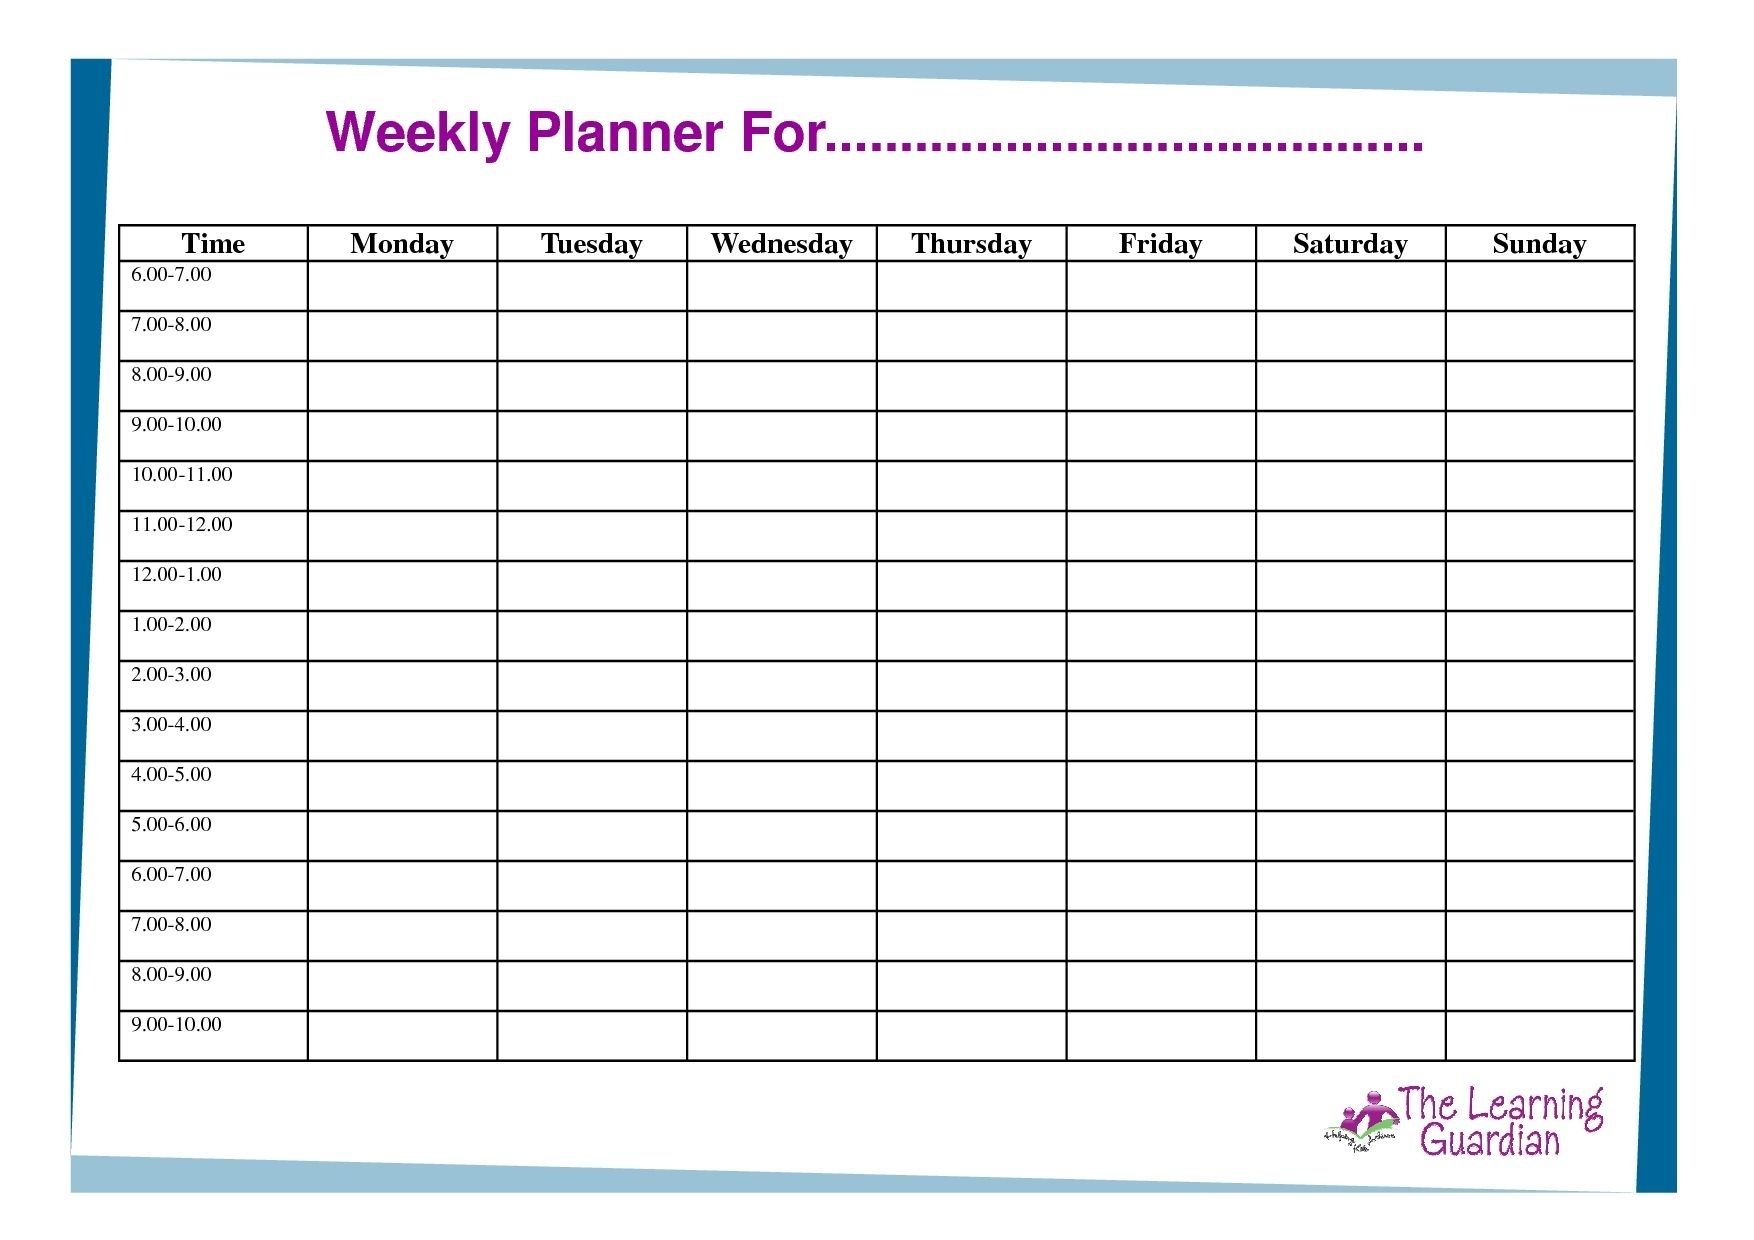 Day Planner E Free Meal Excel Word Schedule Printable Weekly pertaining to 7 Day Weekly Calendar Printable